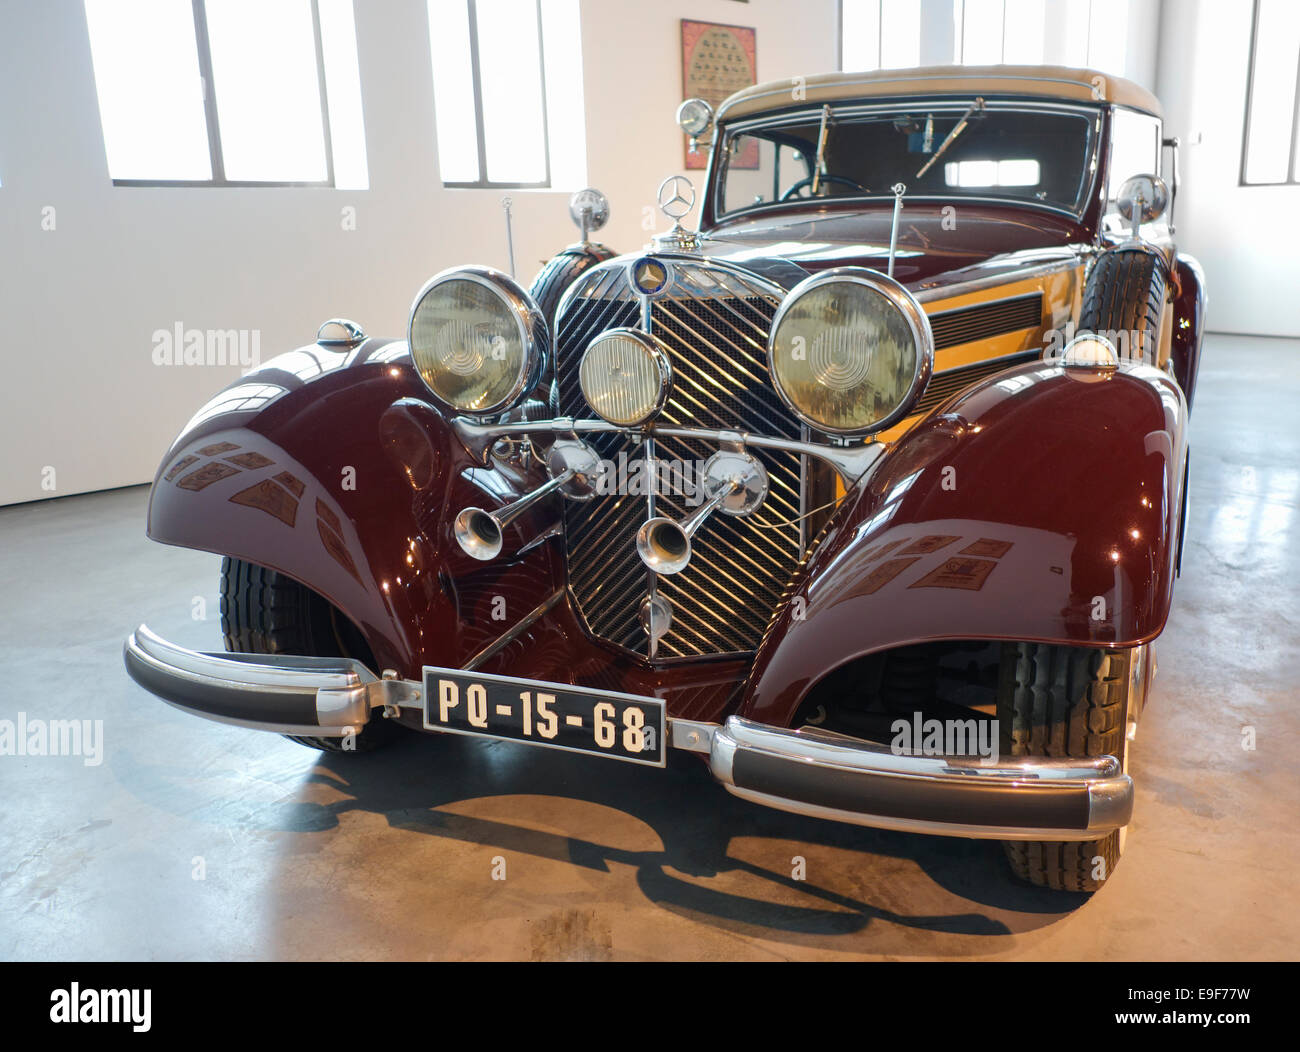 Mercedes Benz, 1937 at Car, Automobile Museum of Málaga, Andalusia, Spain. - Stock Image